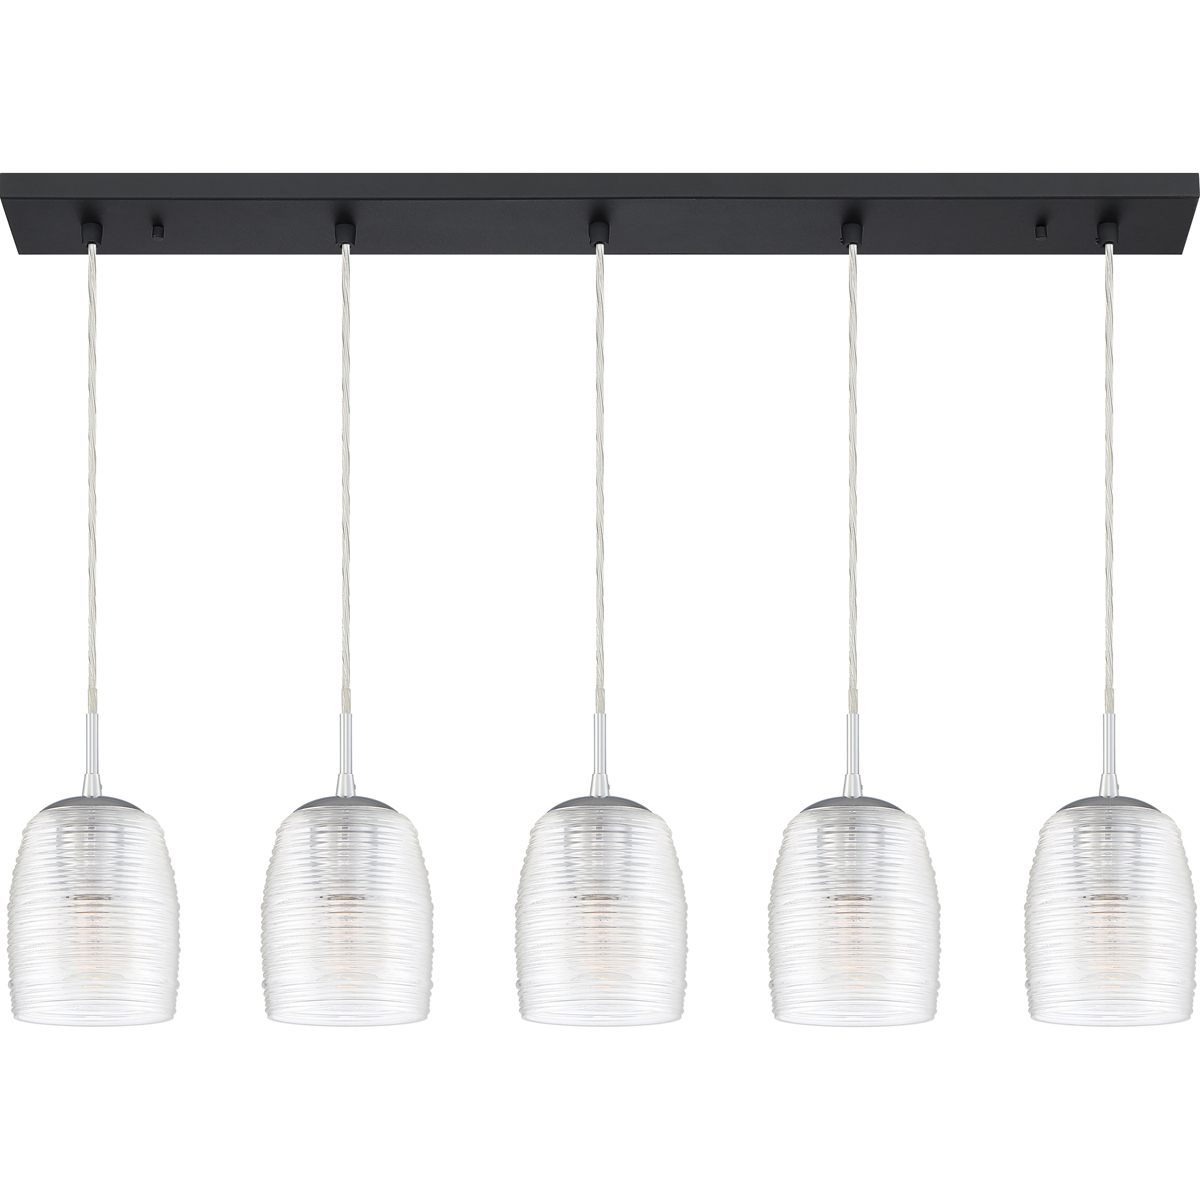 Primary image for Realm 5-Light Linear Chandelier in Earth Black